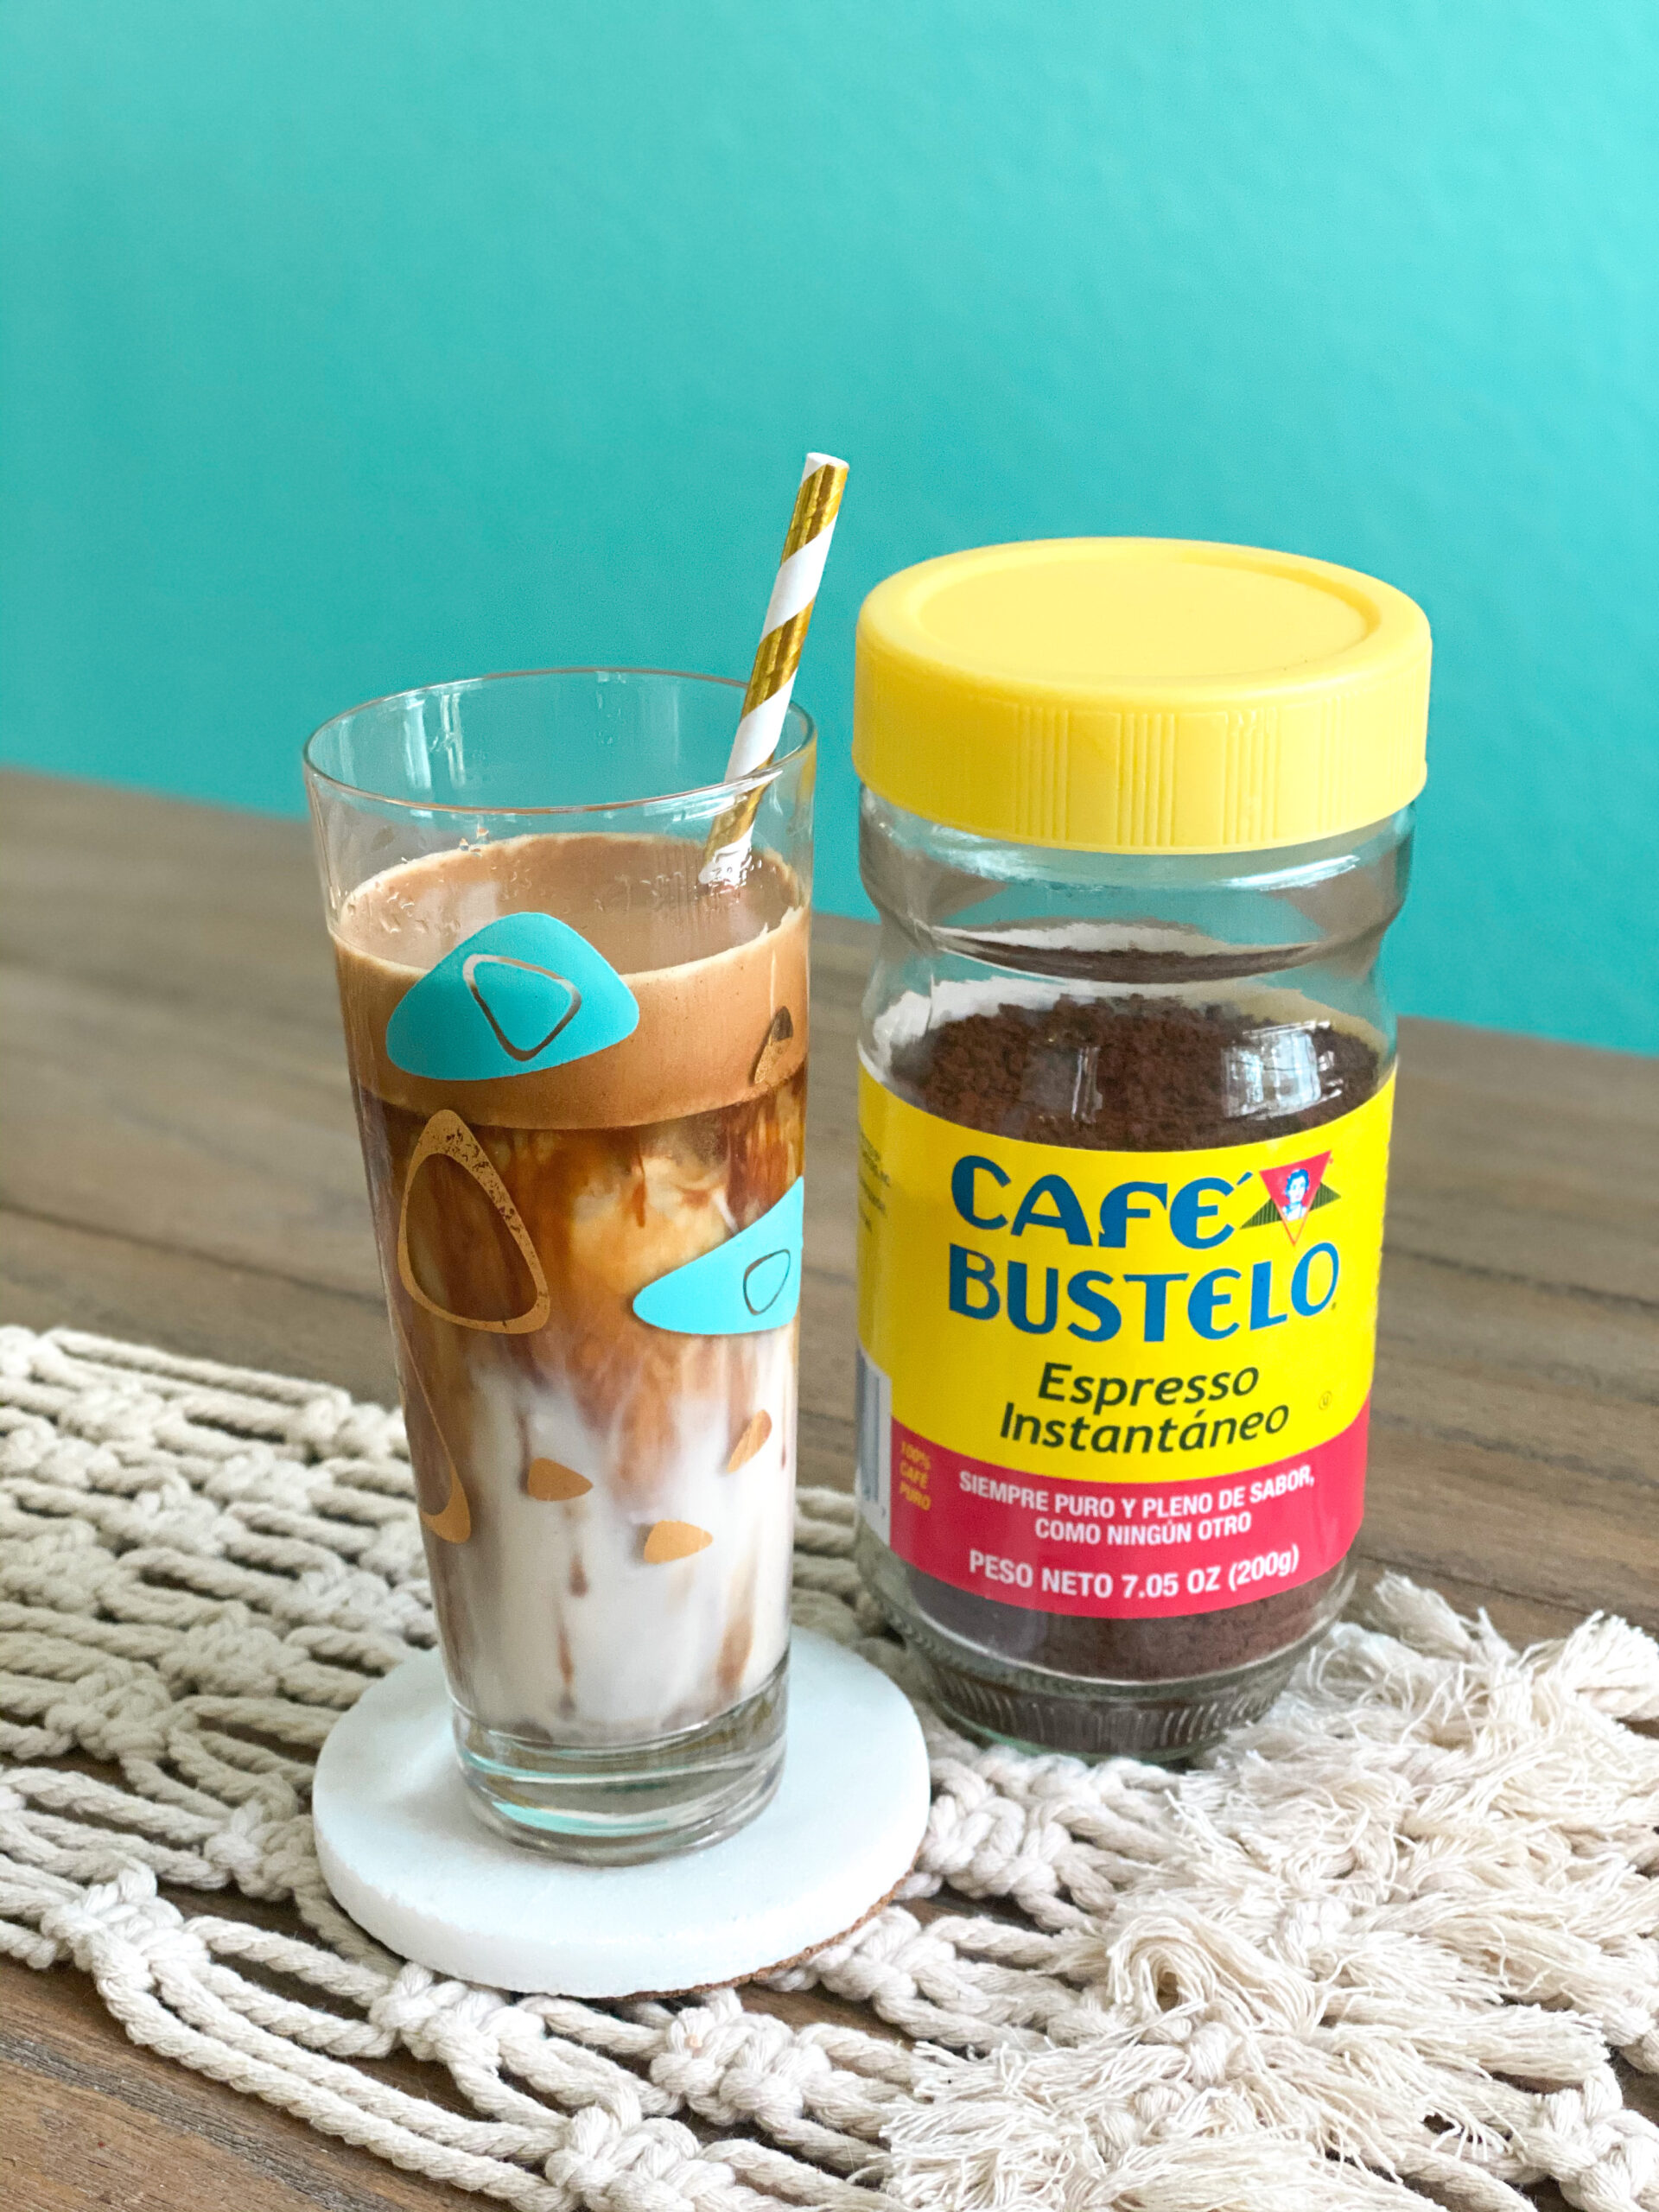 The Frappécito: A Whipped Coffee Recipe Inspired by FLO